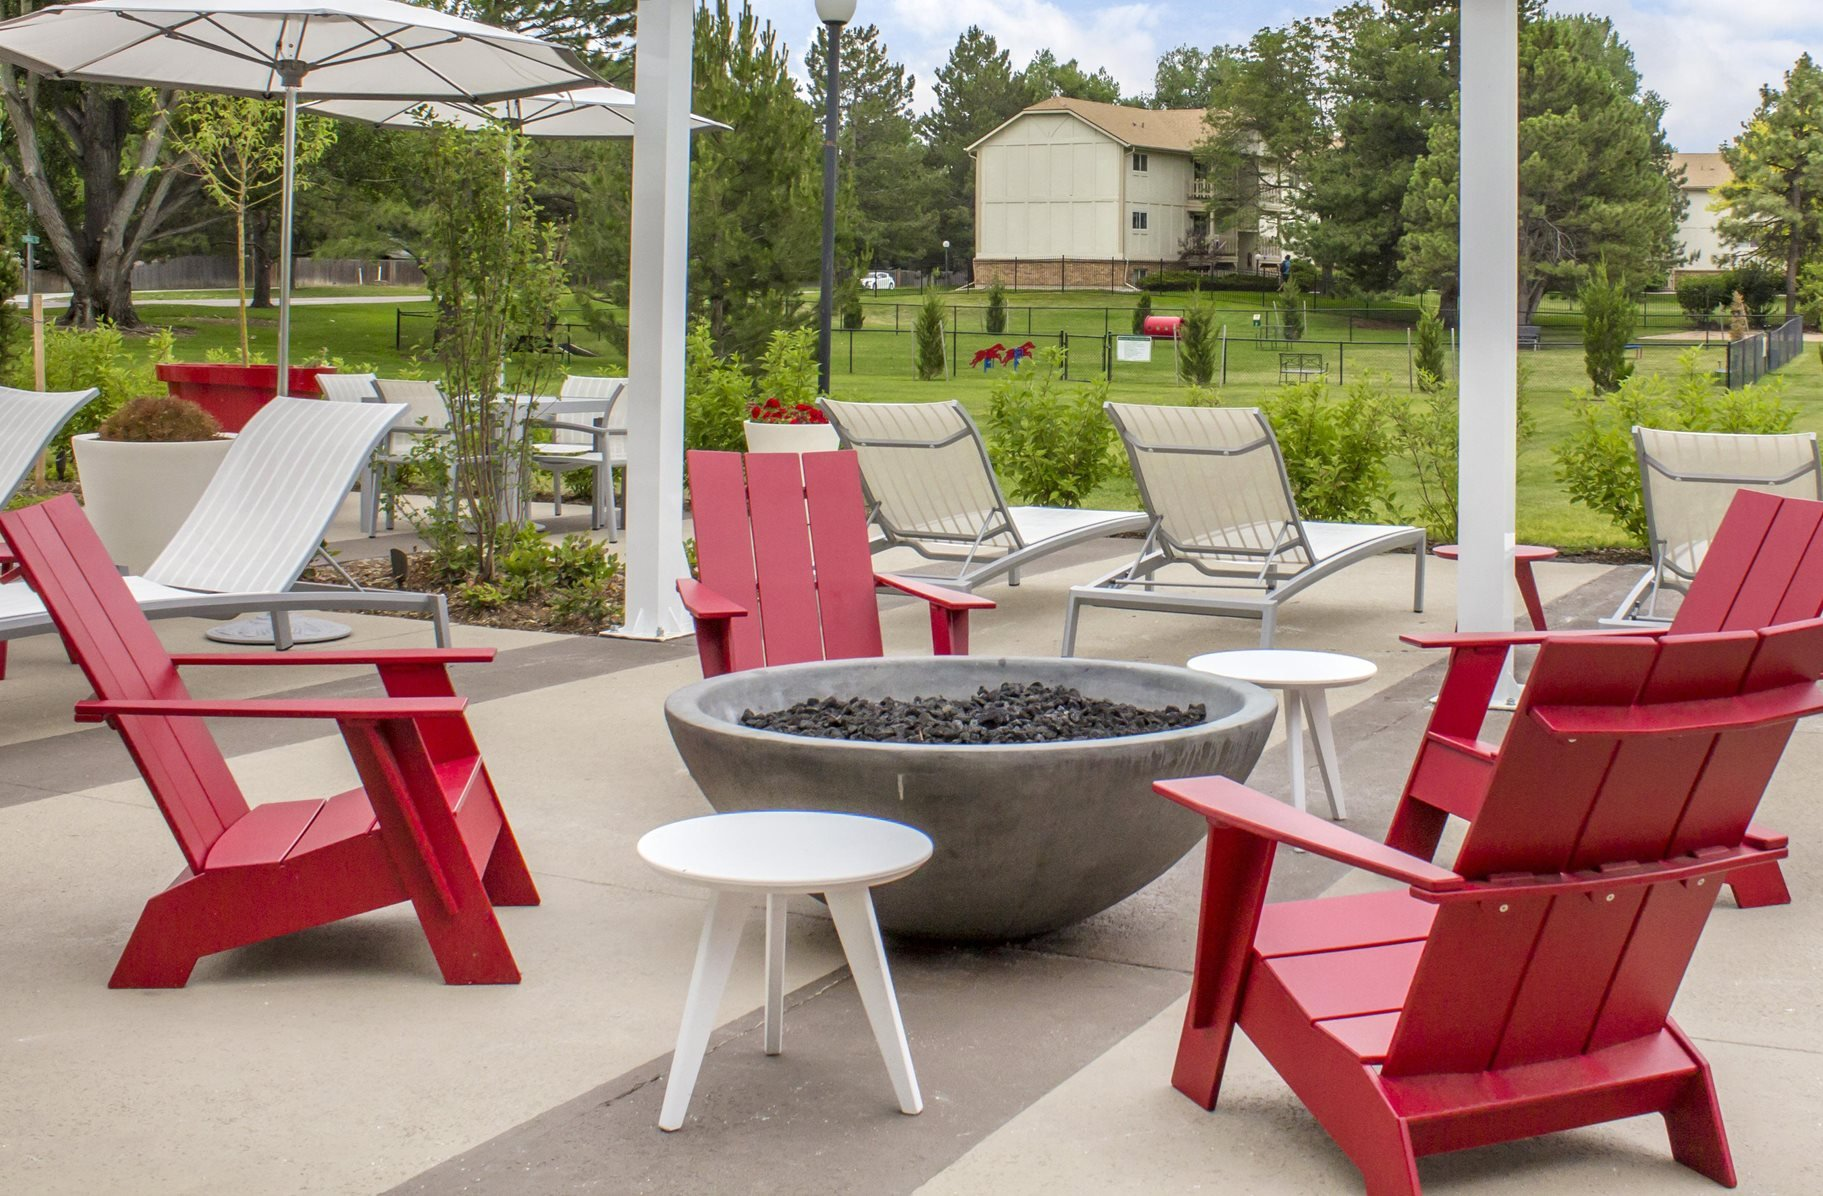 Fire Pit at Village Gardens Apartments in Fort Collins, CO